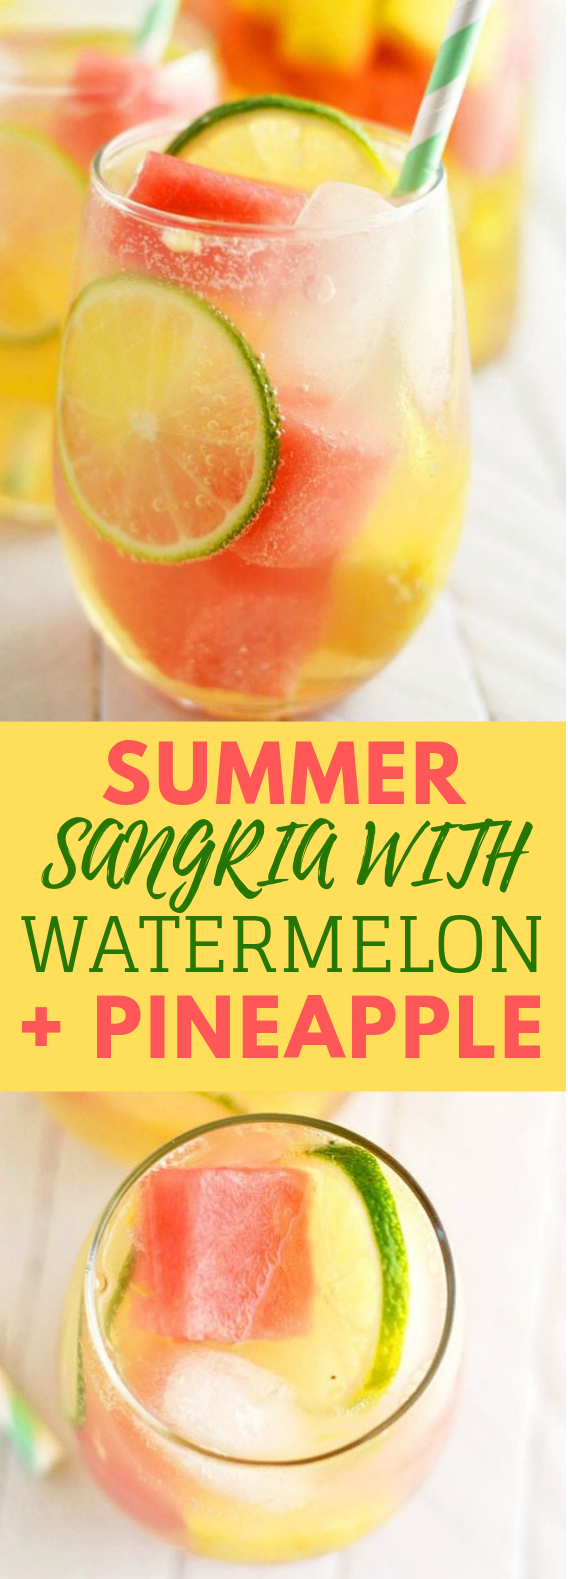 Summer Sangria with Watermelon and Pineapple Summer Drink #drink #pineapple #sangria #summer #watermelon